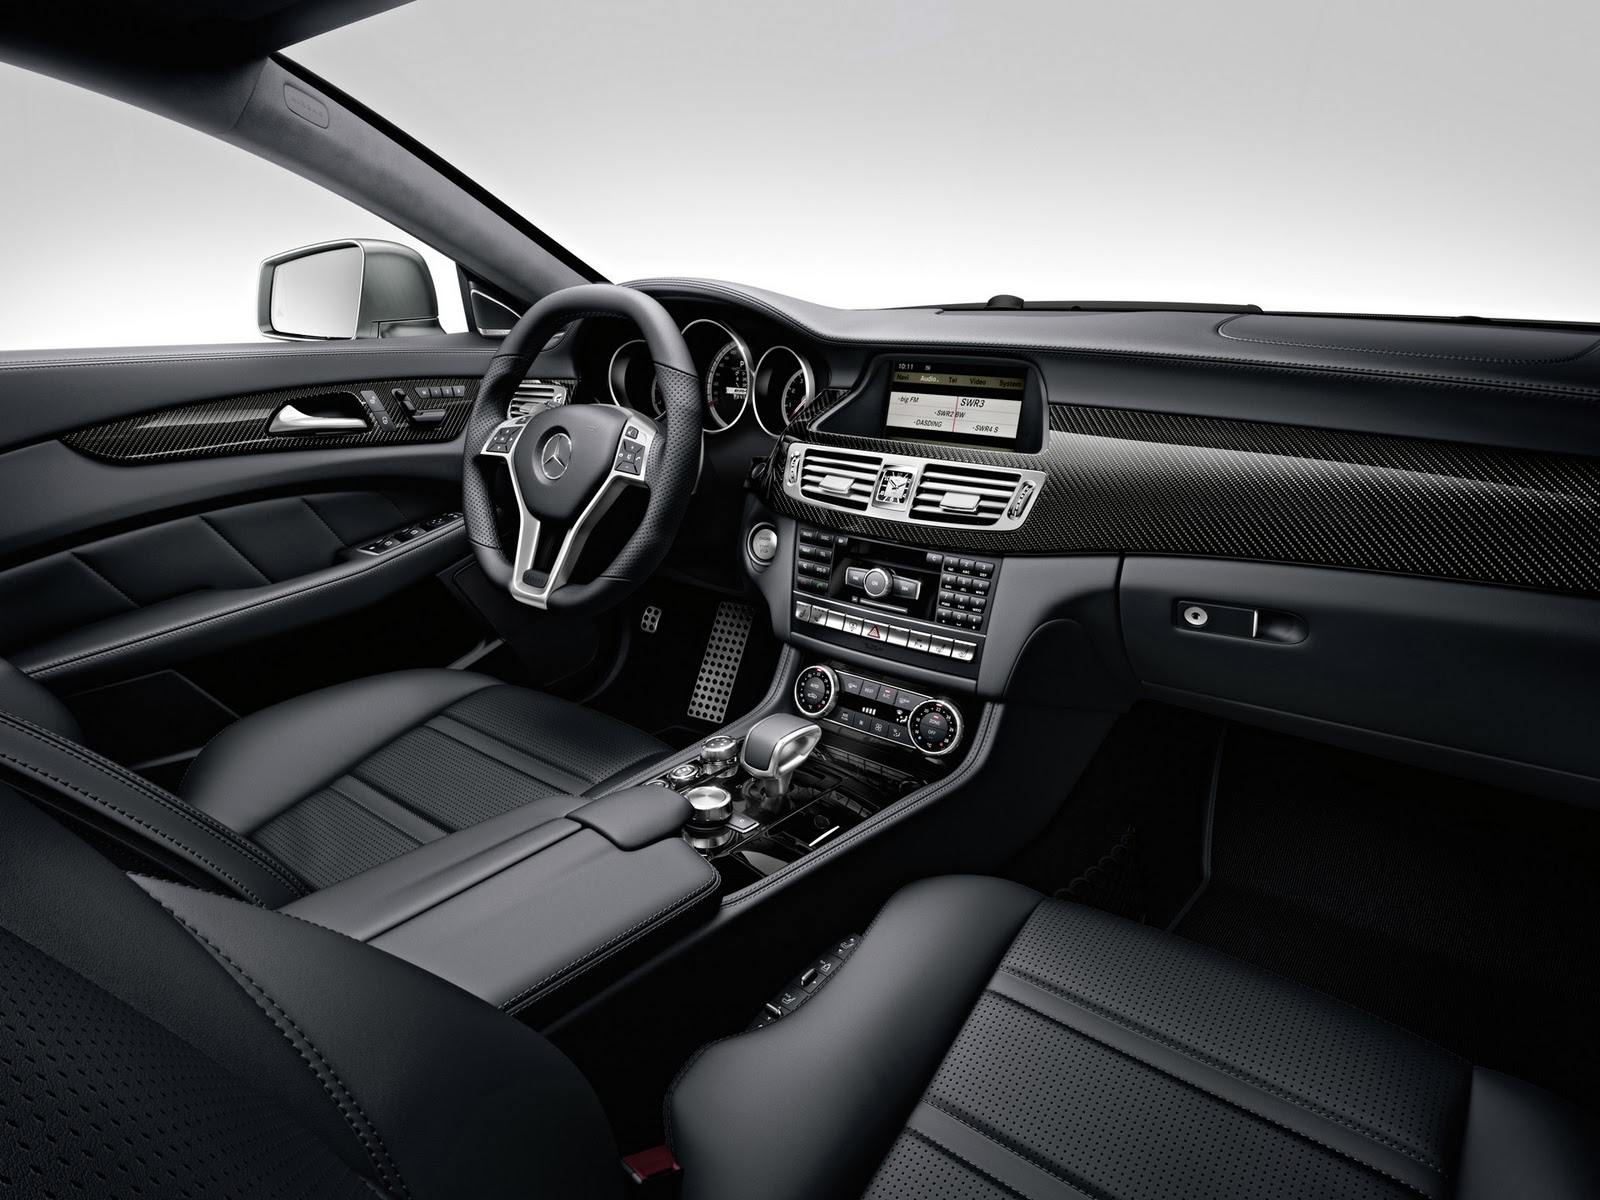 Mercedes Amg Neue Editions Modelle furthermore Test Mercedes Benz Gle Coupe 350d also Current Mercedes Benz Model Lineup In Los Angeles moreover Wallpaper 07 moreover 2017 Mercedes Benz E Class. on mercedes e 350 coupe interior